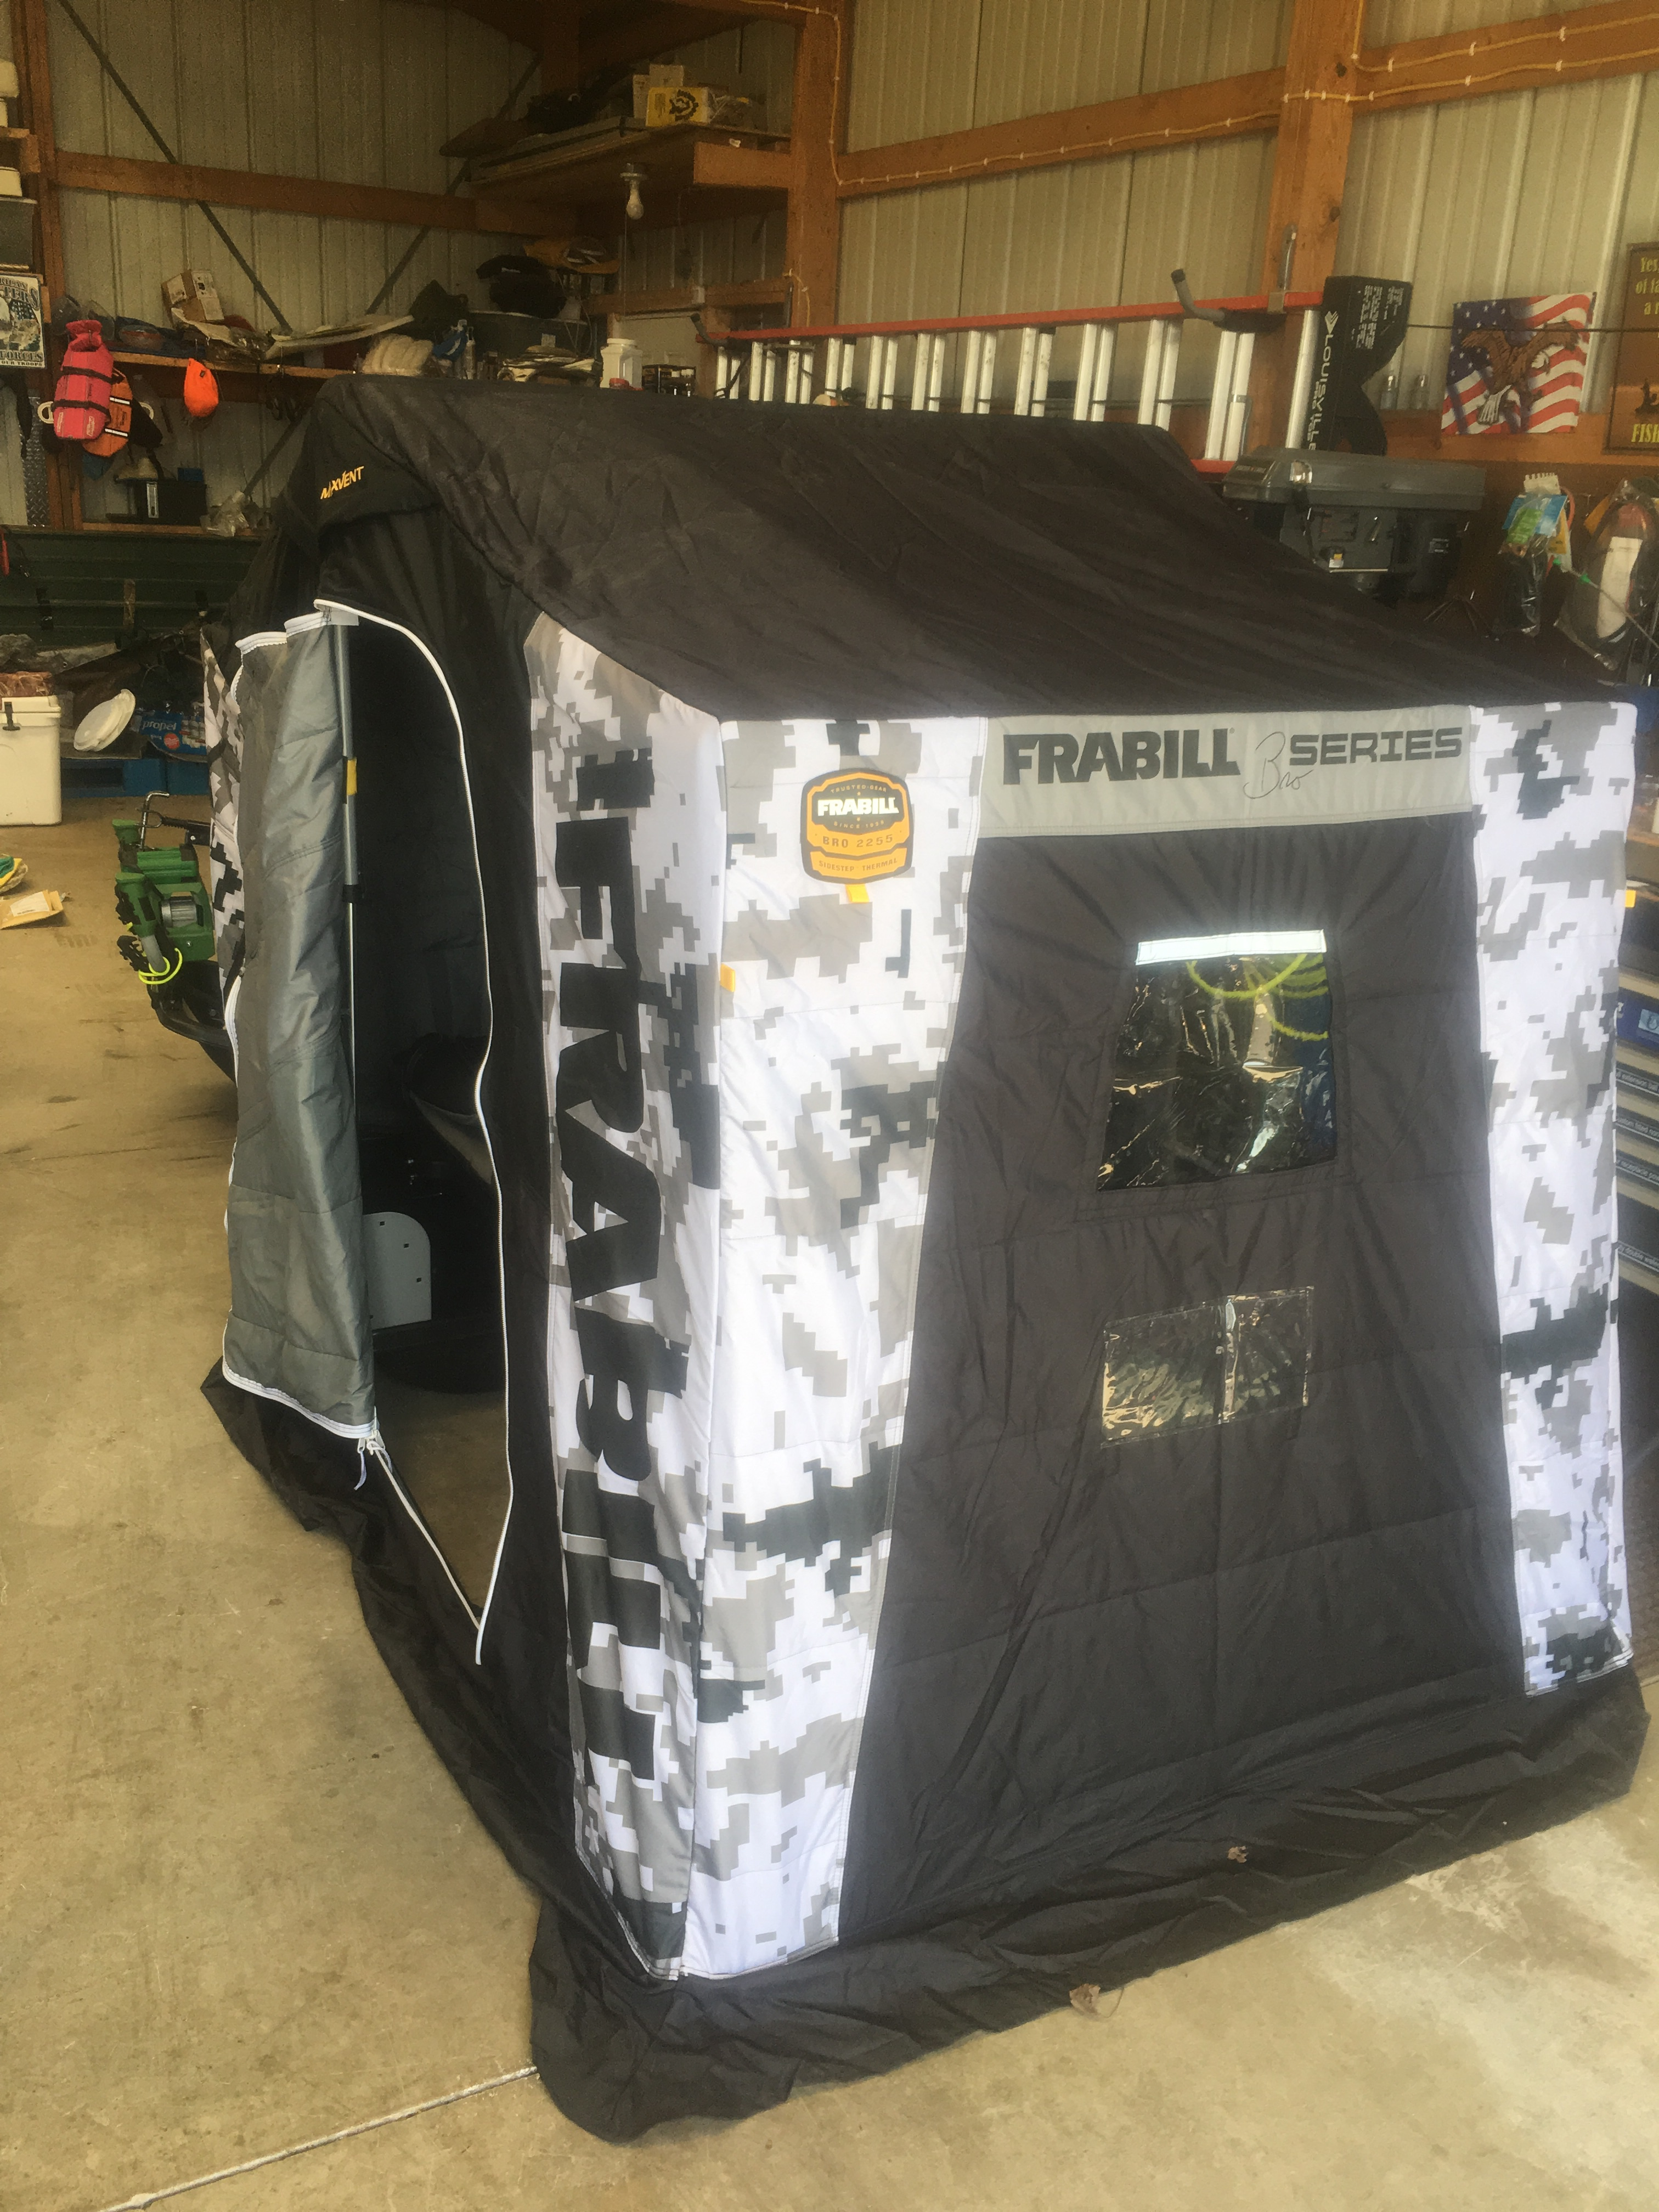 Frabill Bro Flip Over shelter - Classifieds - Buy, Sell, Trade or